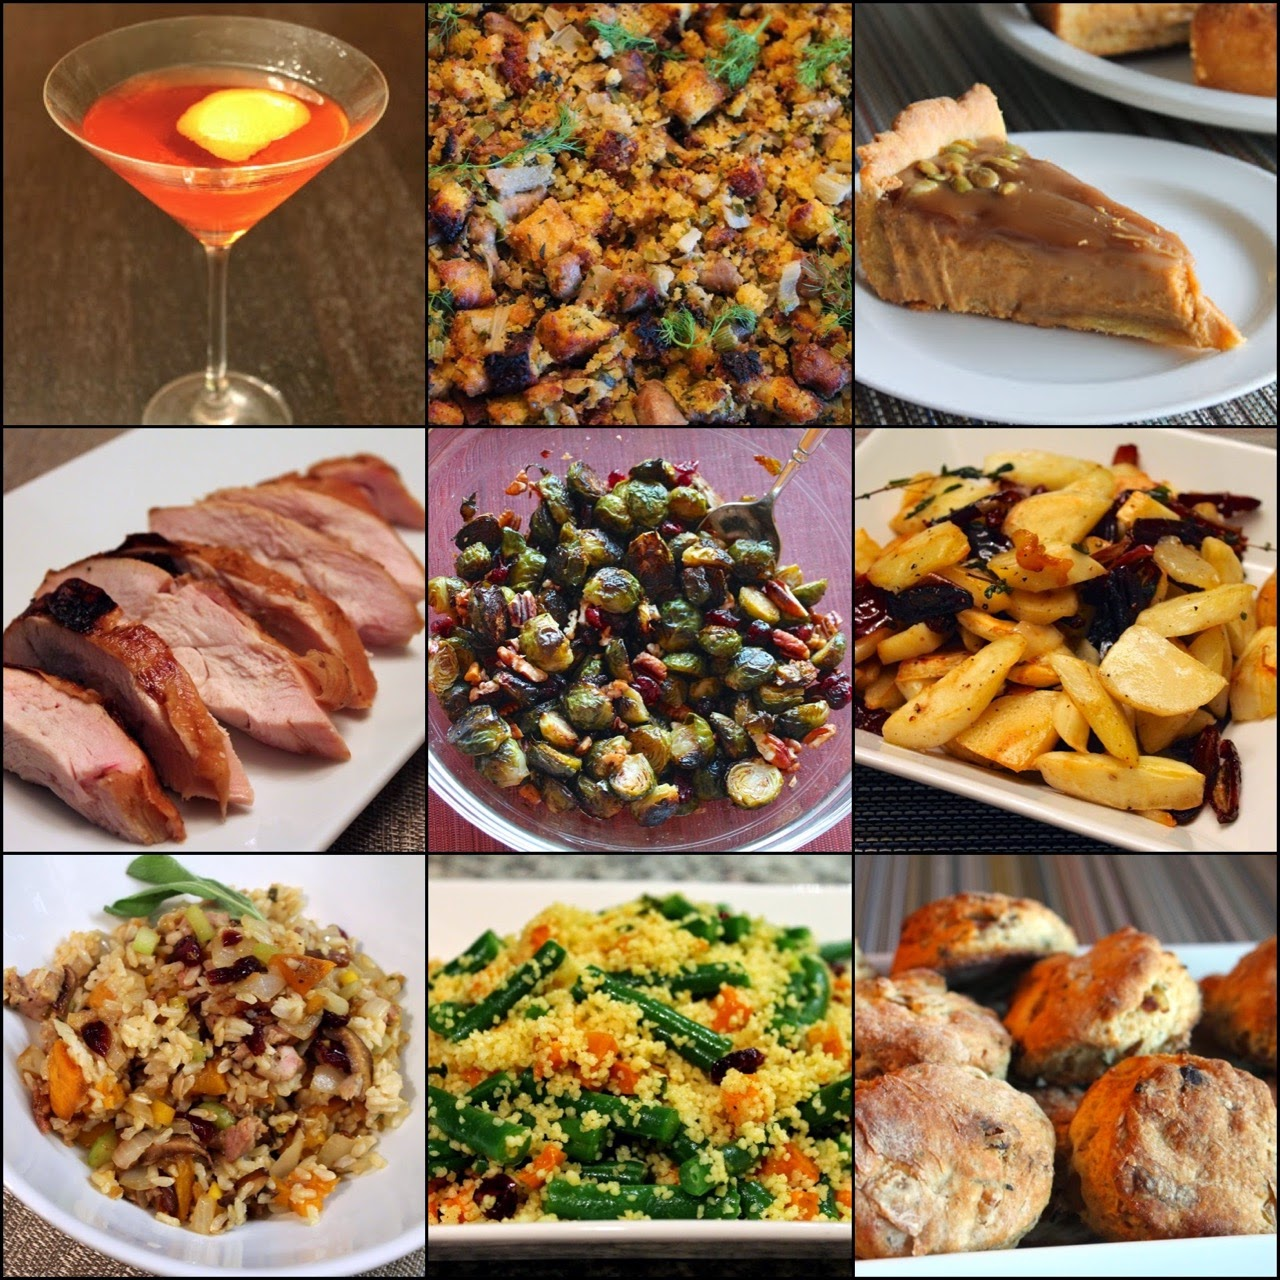 what are classic thanksgiving foods